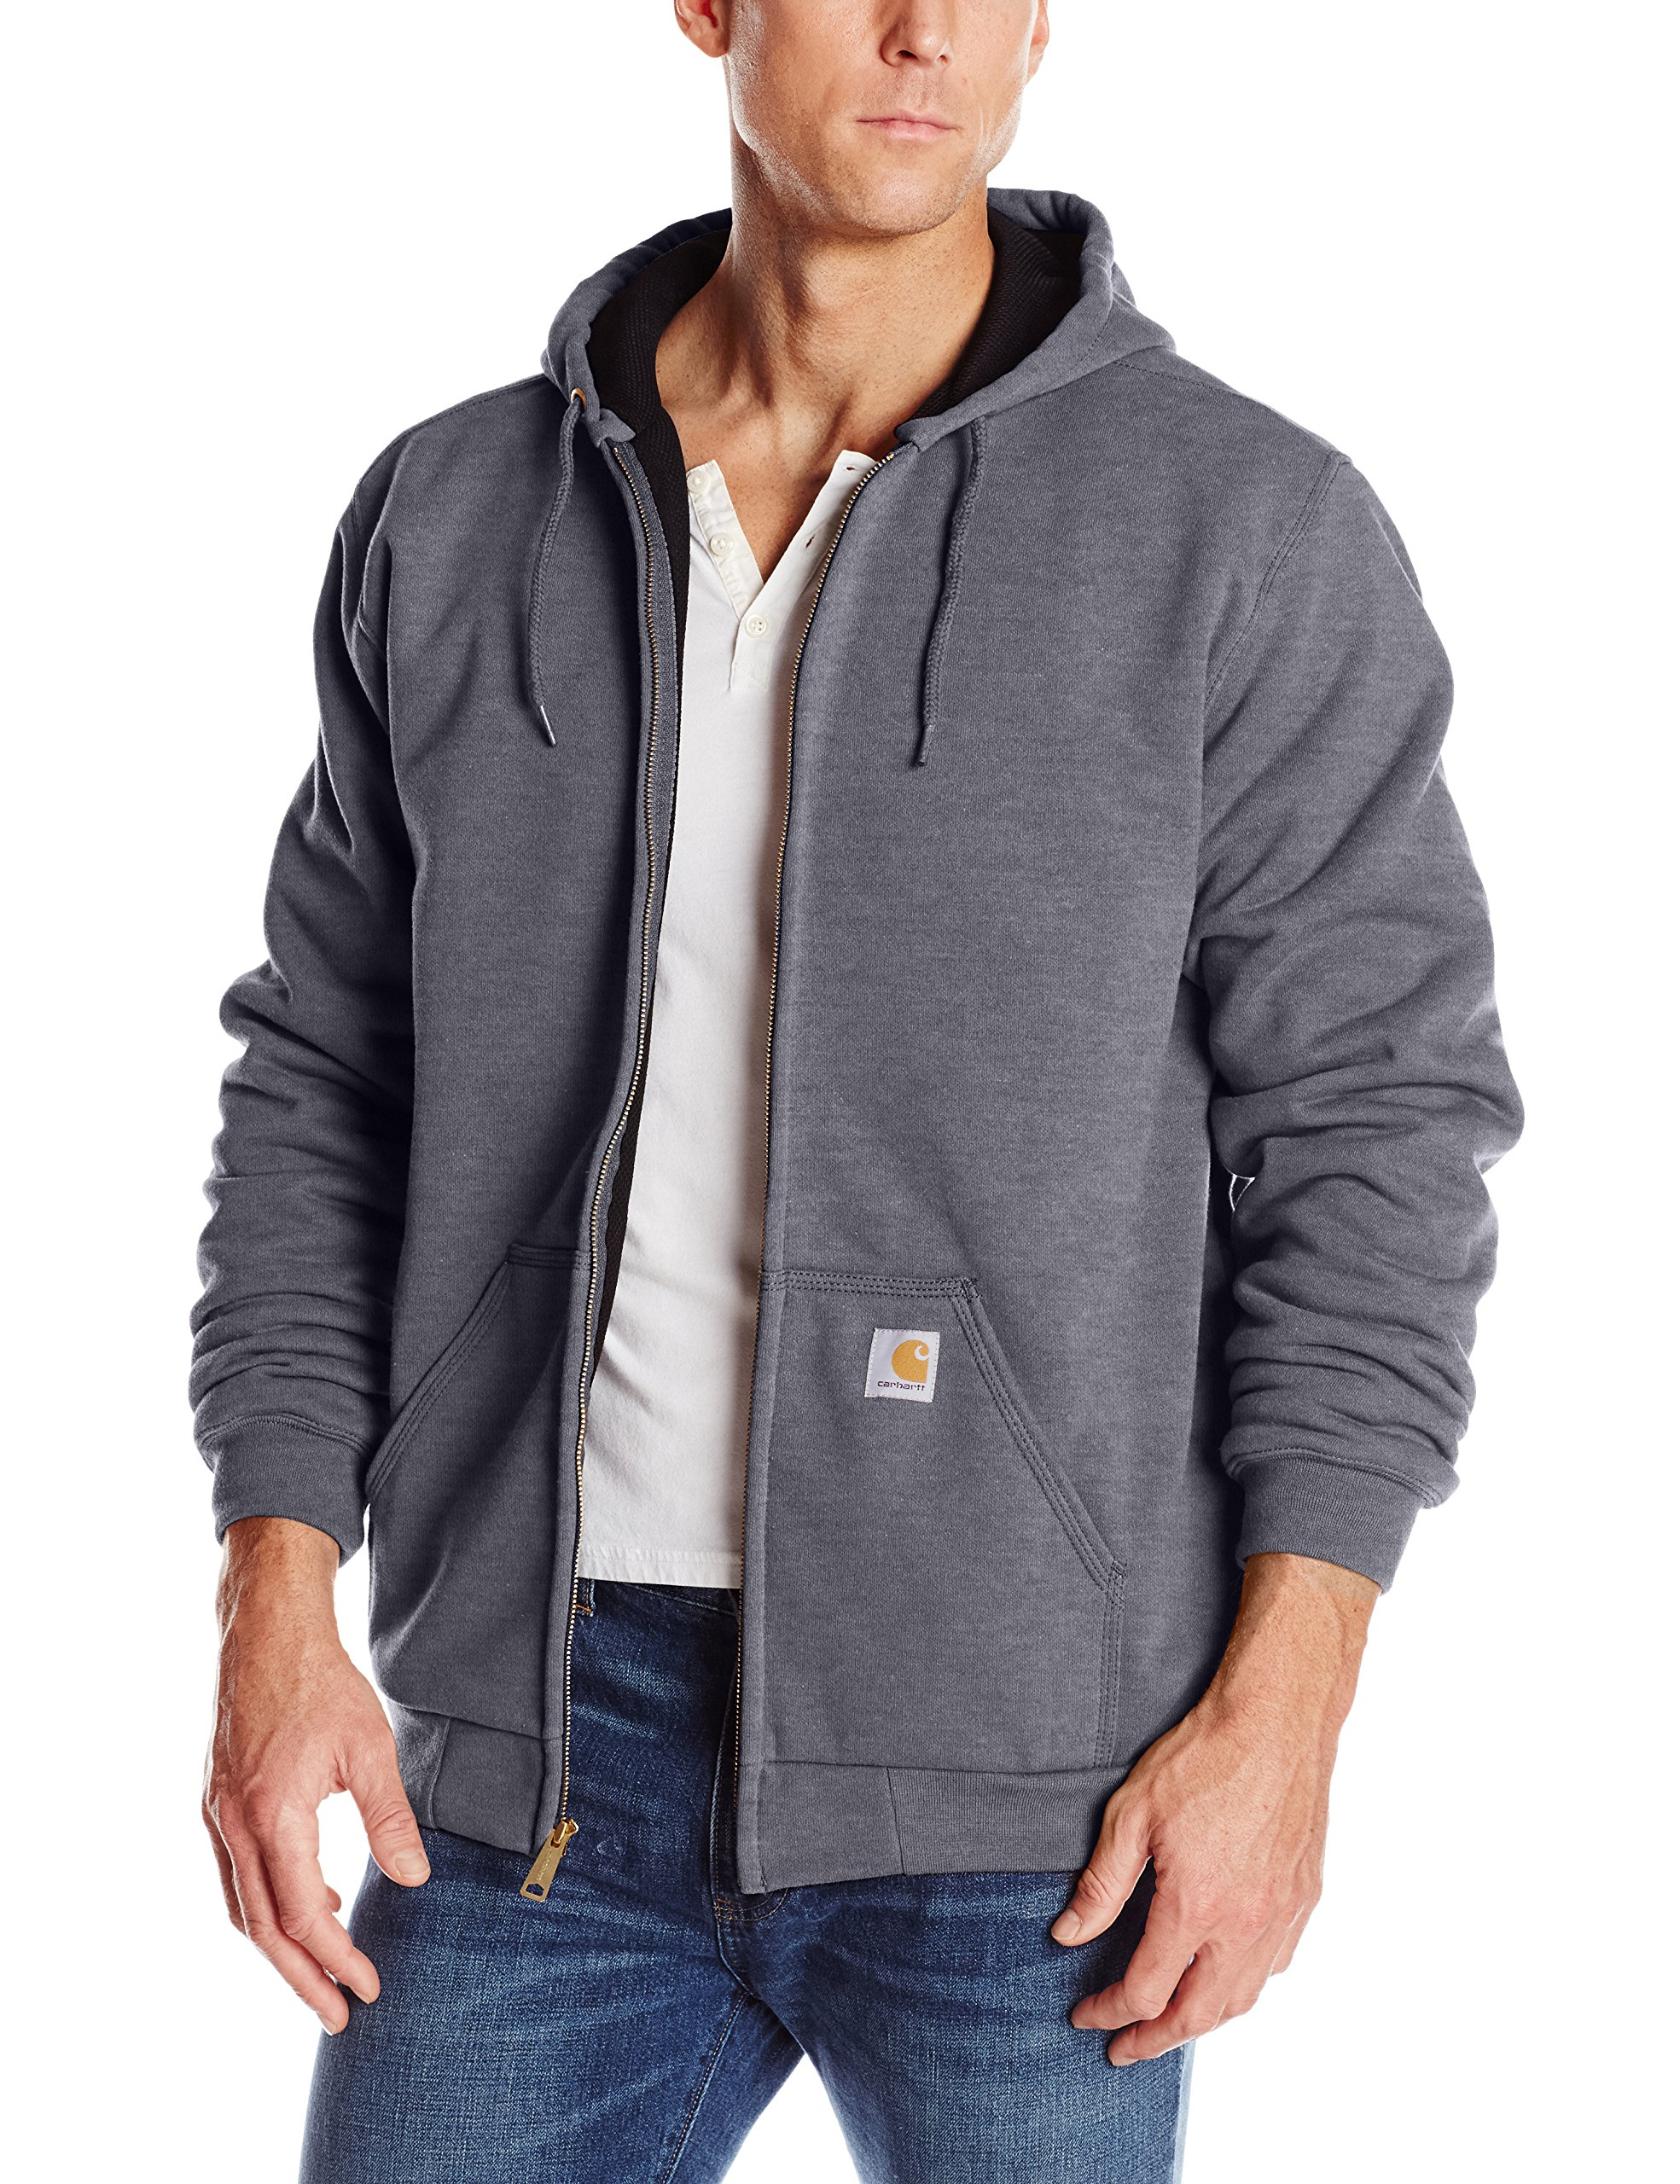 Carhartt Rutland Thermal-Lined Hooded Zip-Front Sweatshirt, Carbon Heather, XX-Large Tall